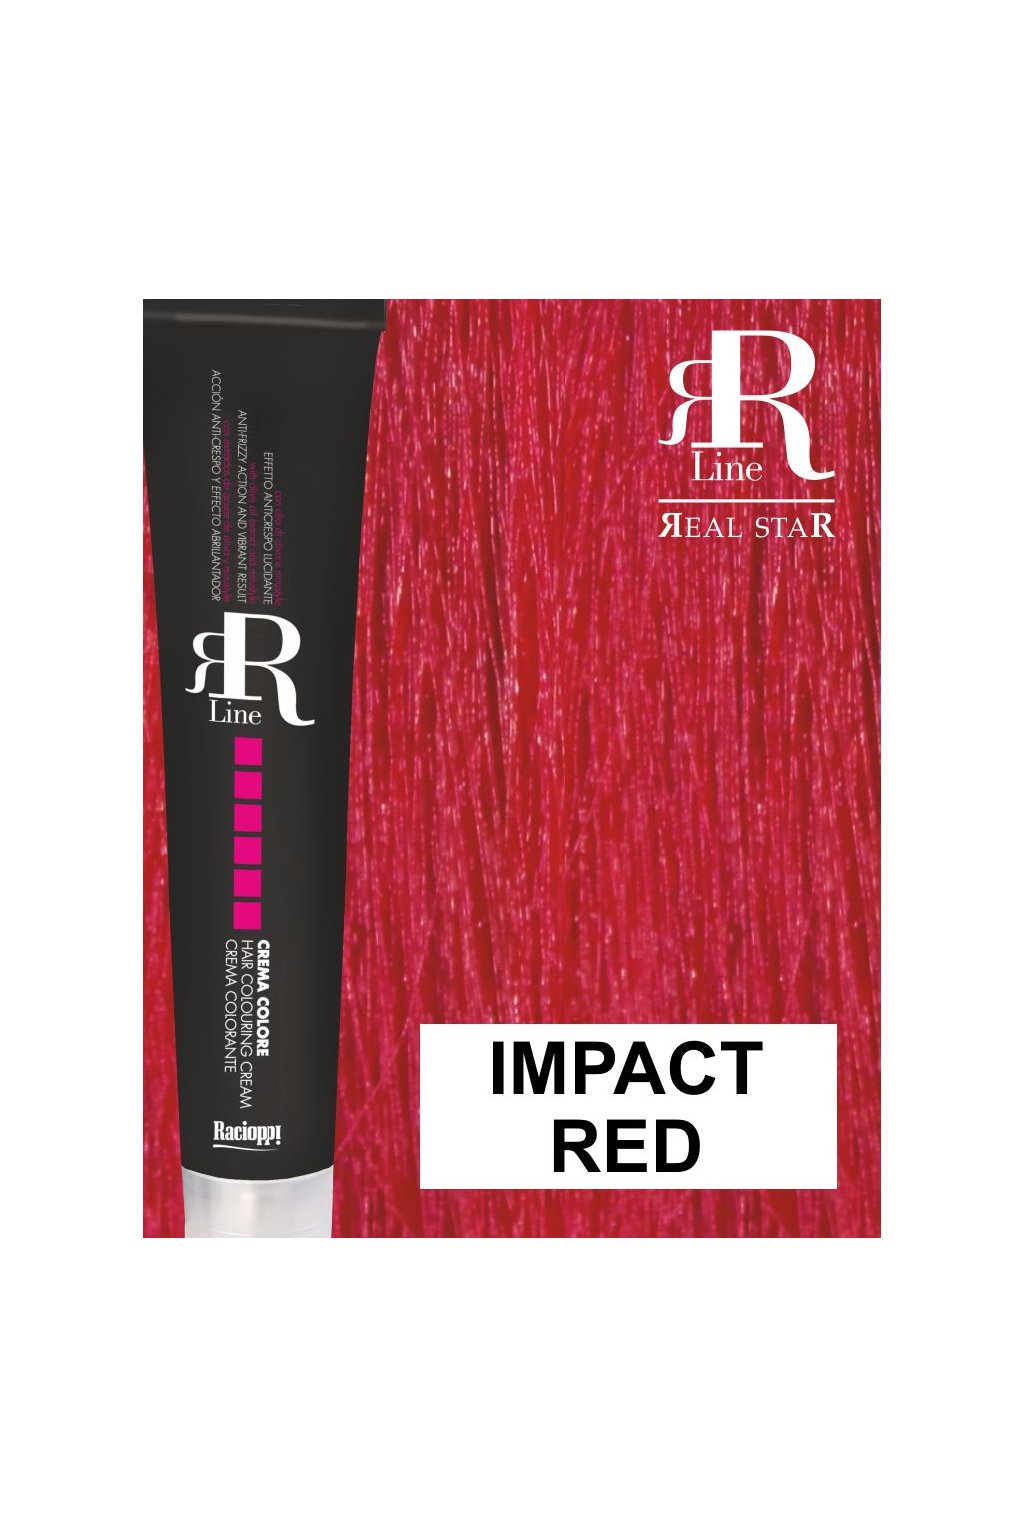 IMPACT RED